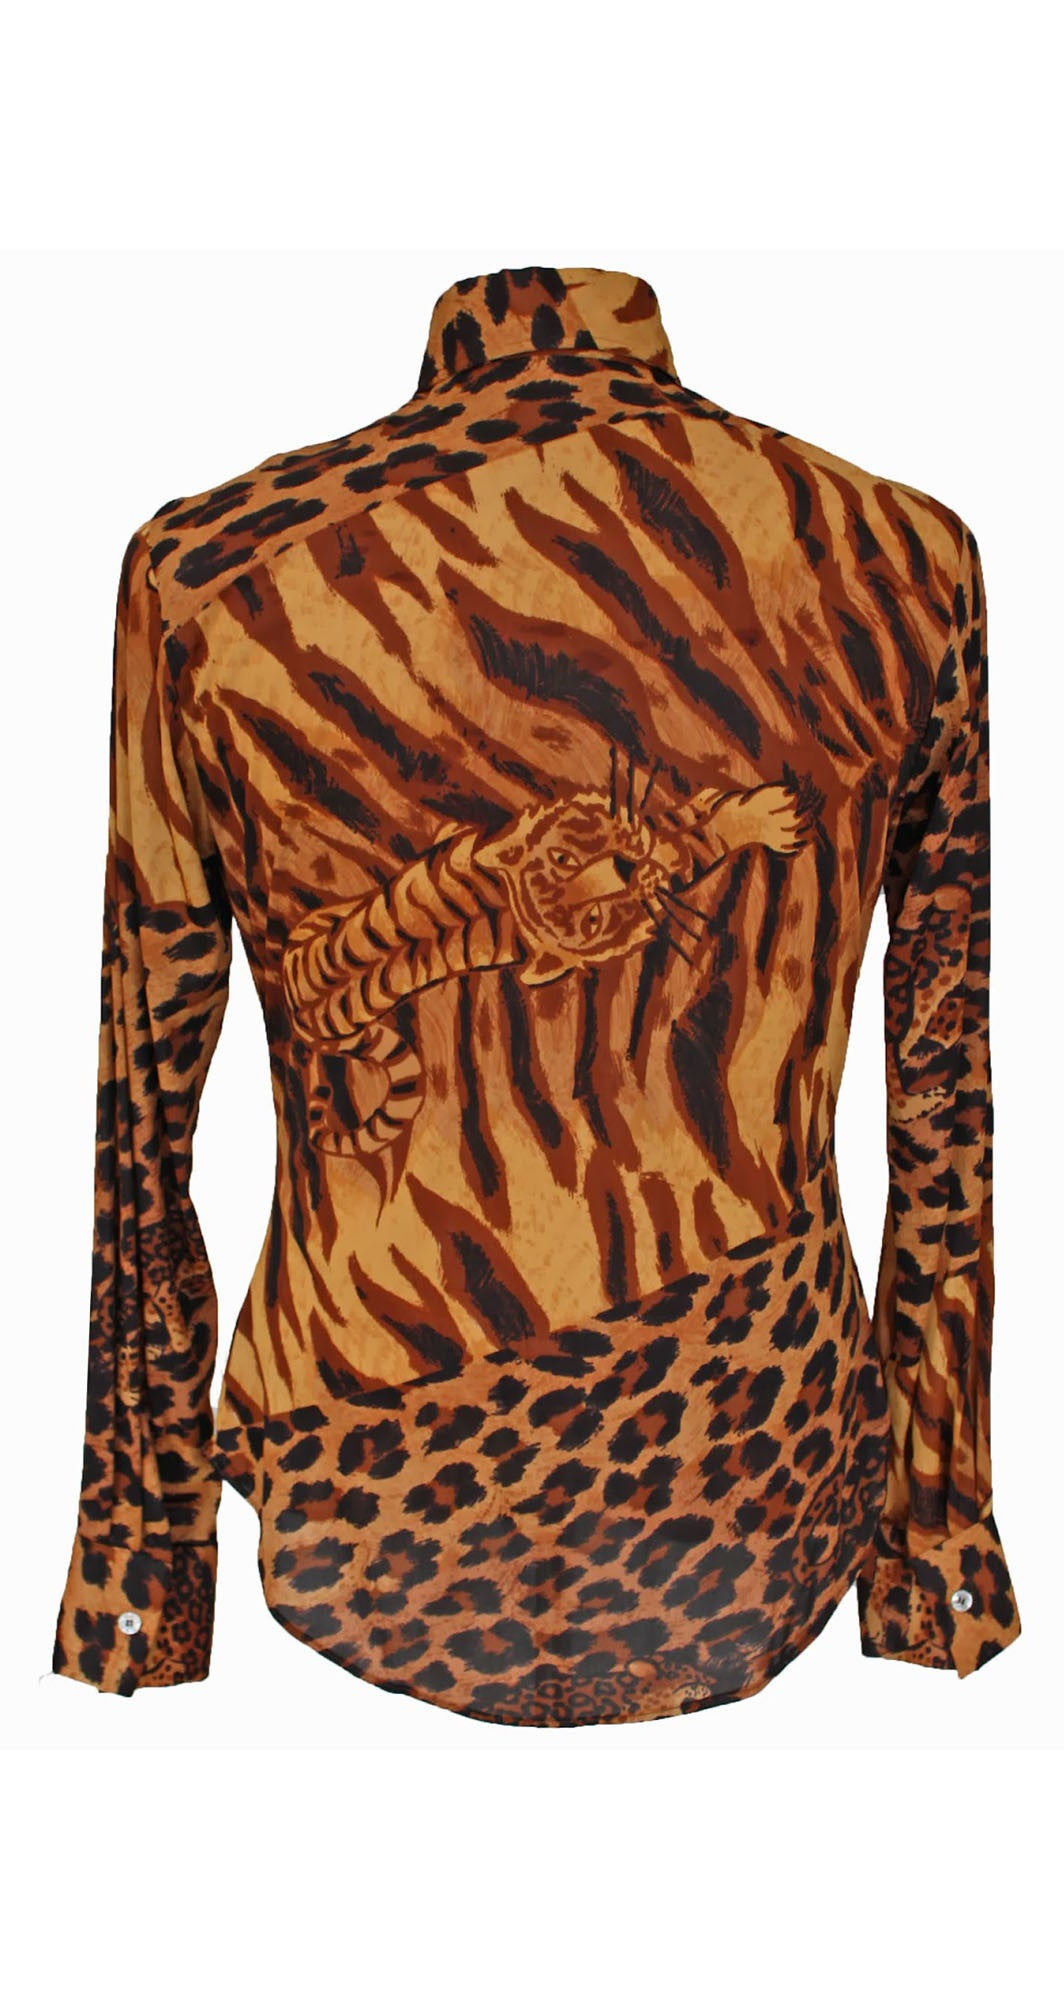 1970s Men's Leopard Print Shirt